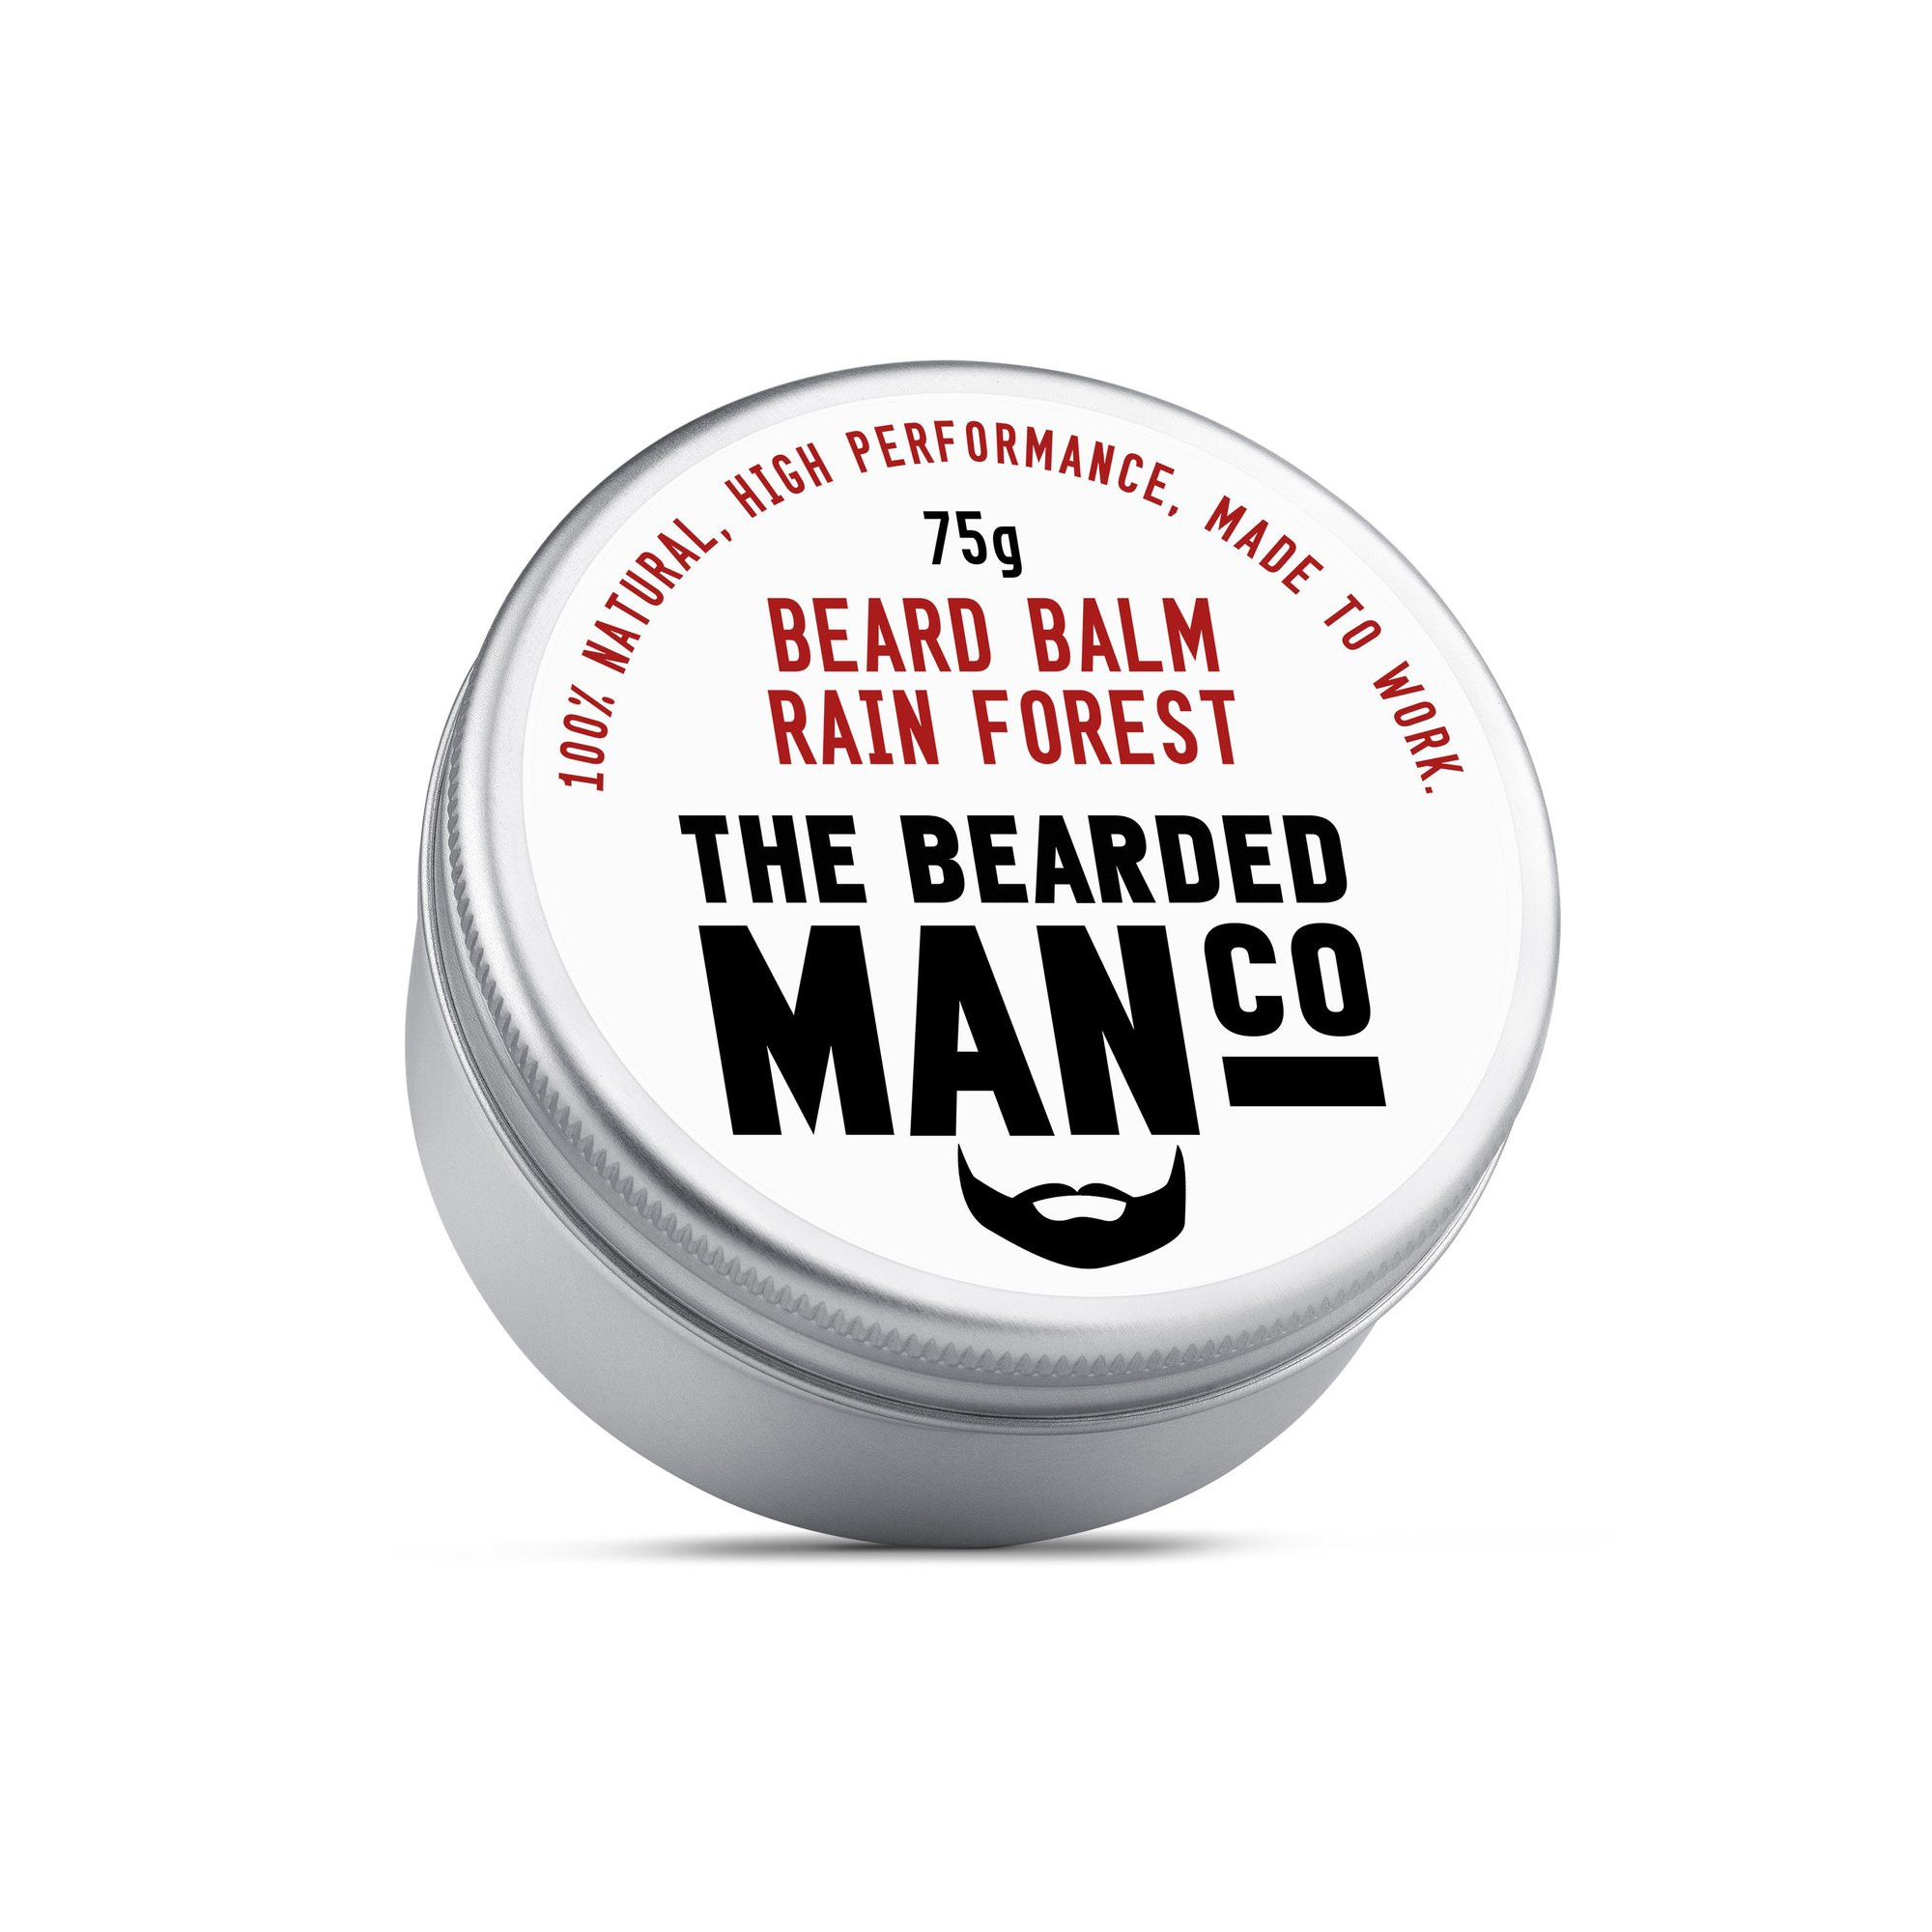 Bearded Man Co - Balsam do brody Las Deszczowy - Rain Forest 30g (1)